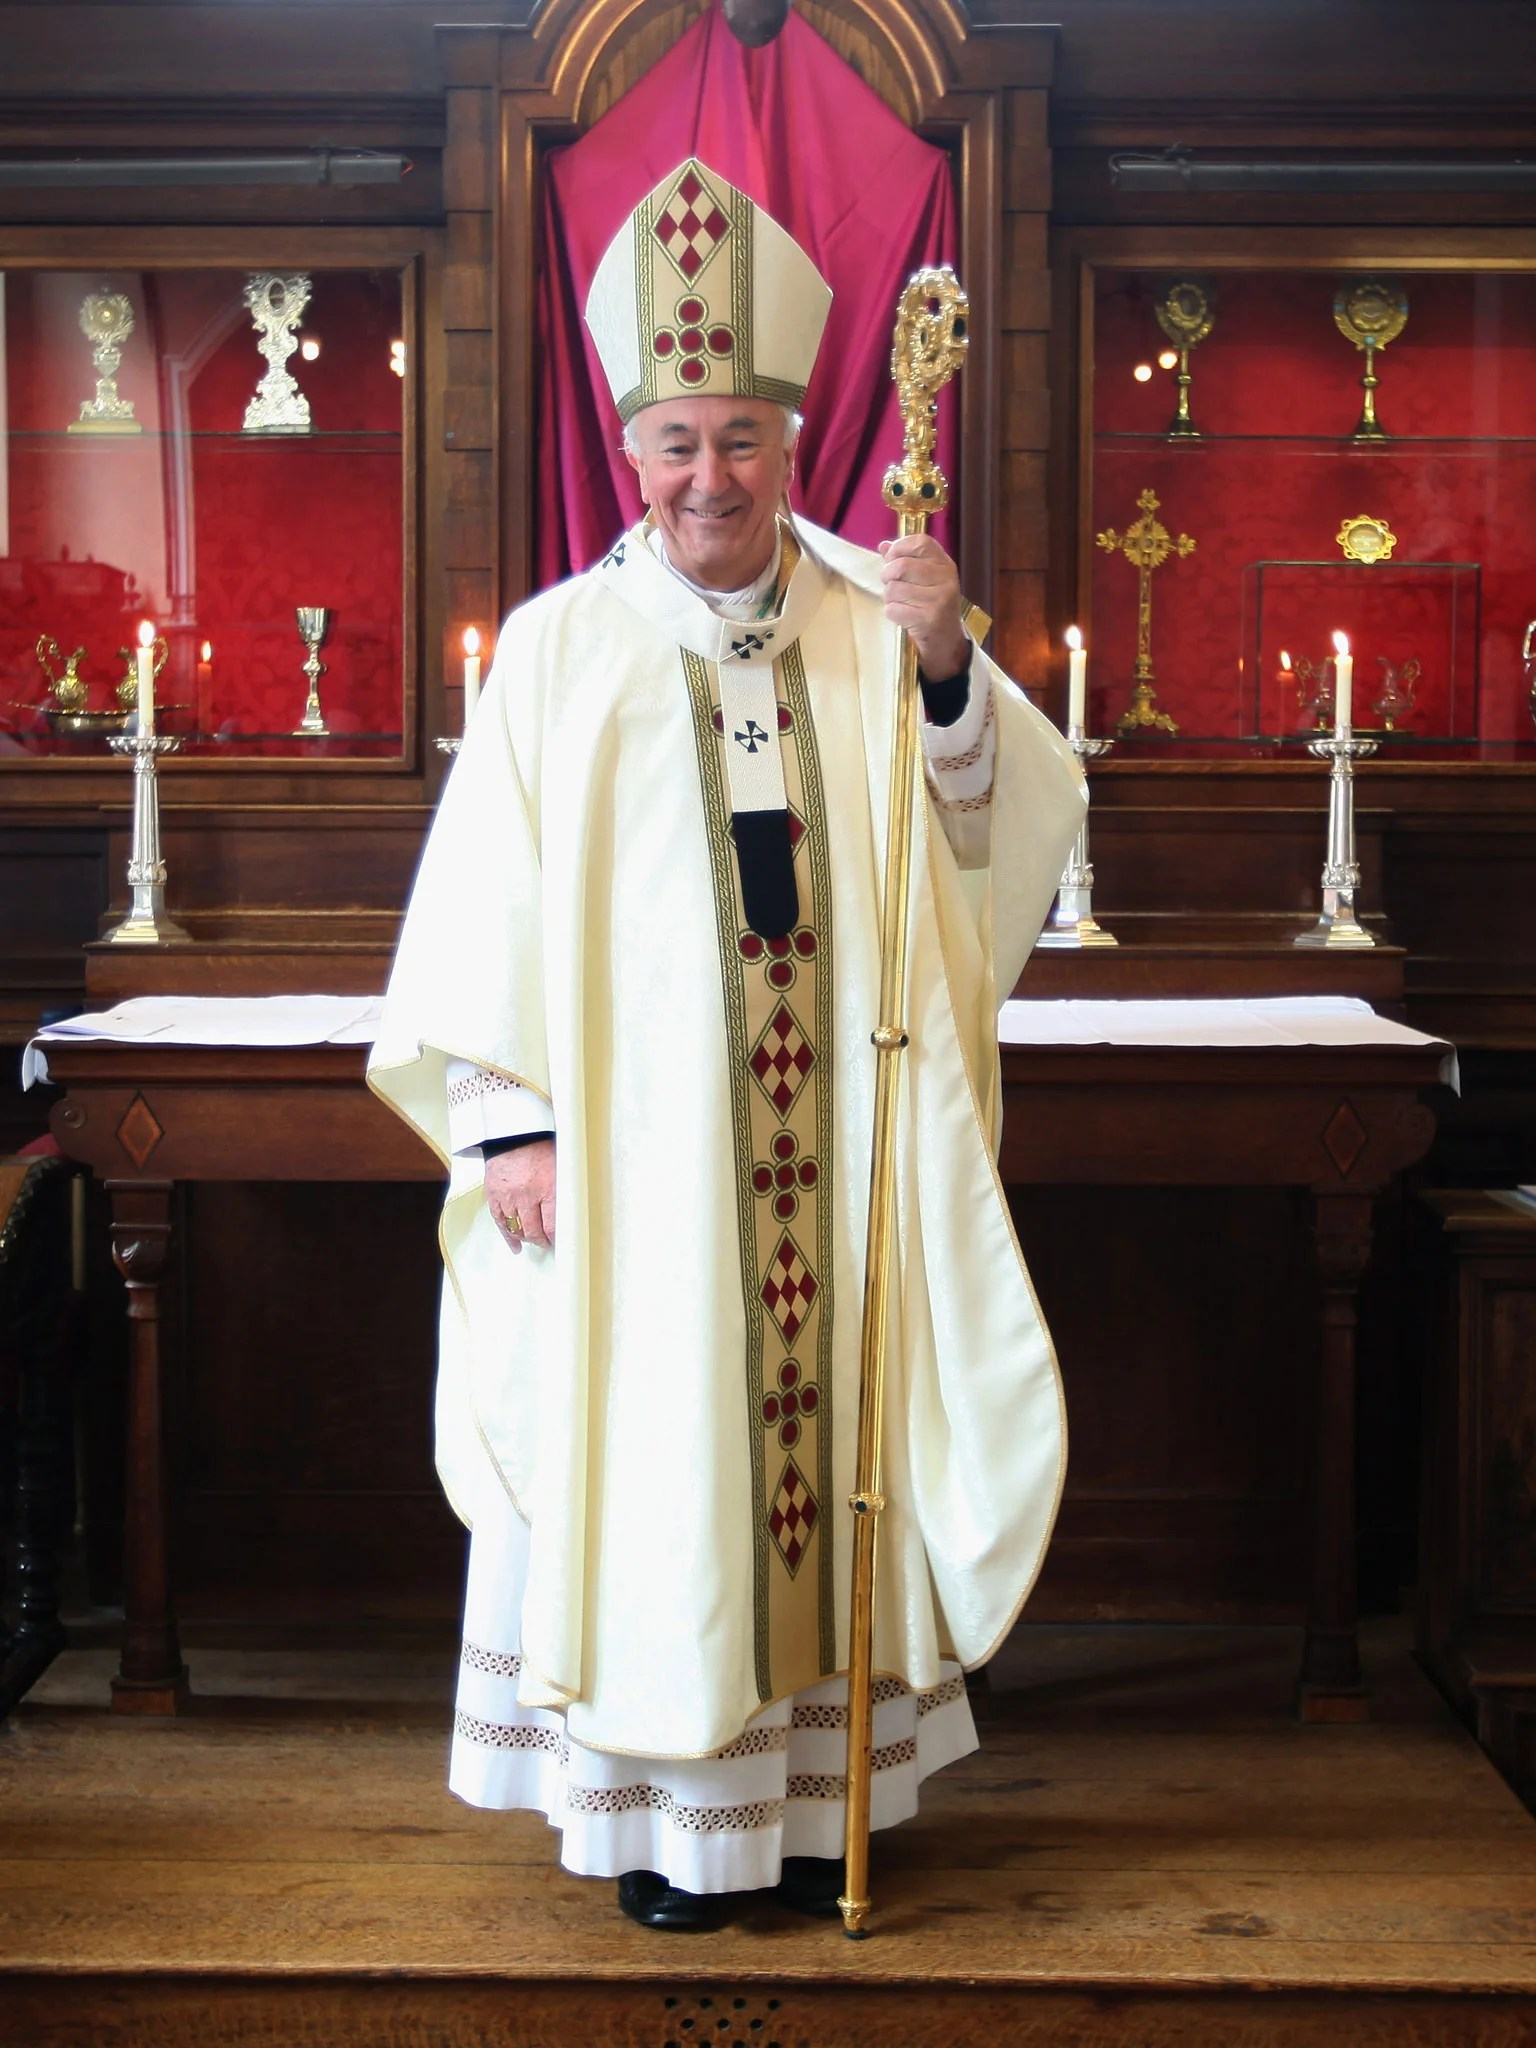 Archbishop Of Westminster Vincent Nichols To Be Made A Cardinal By Pope Francis The Independent